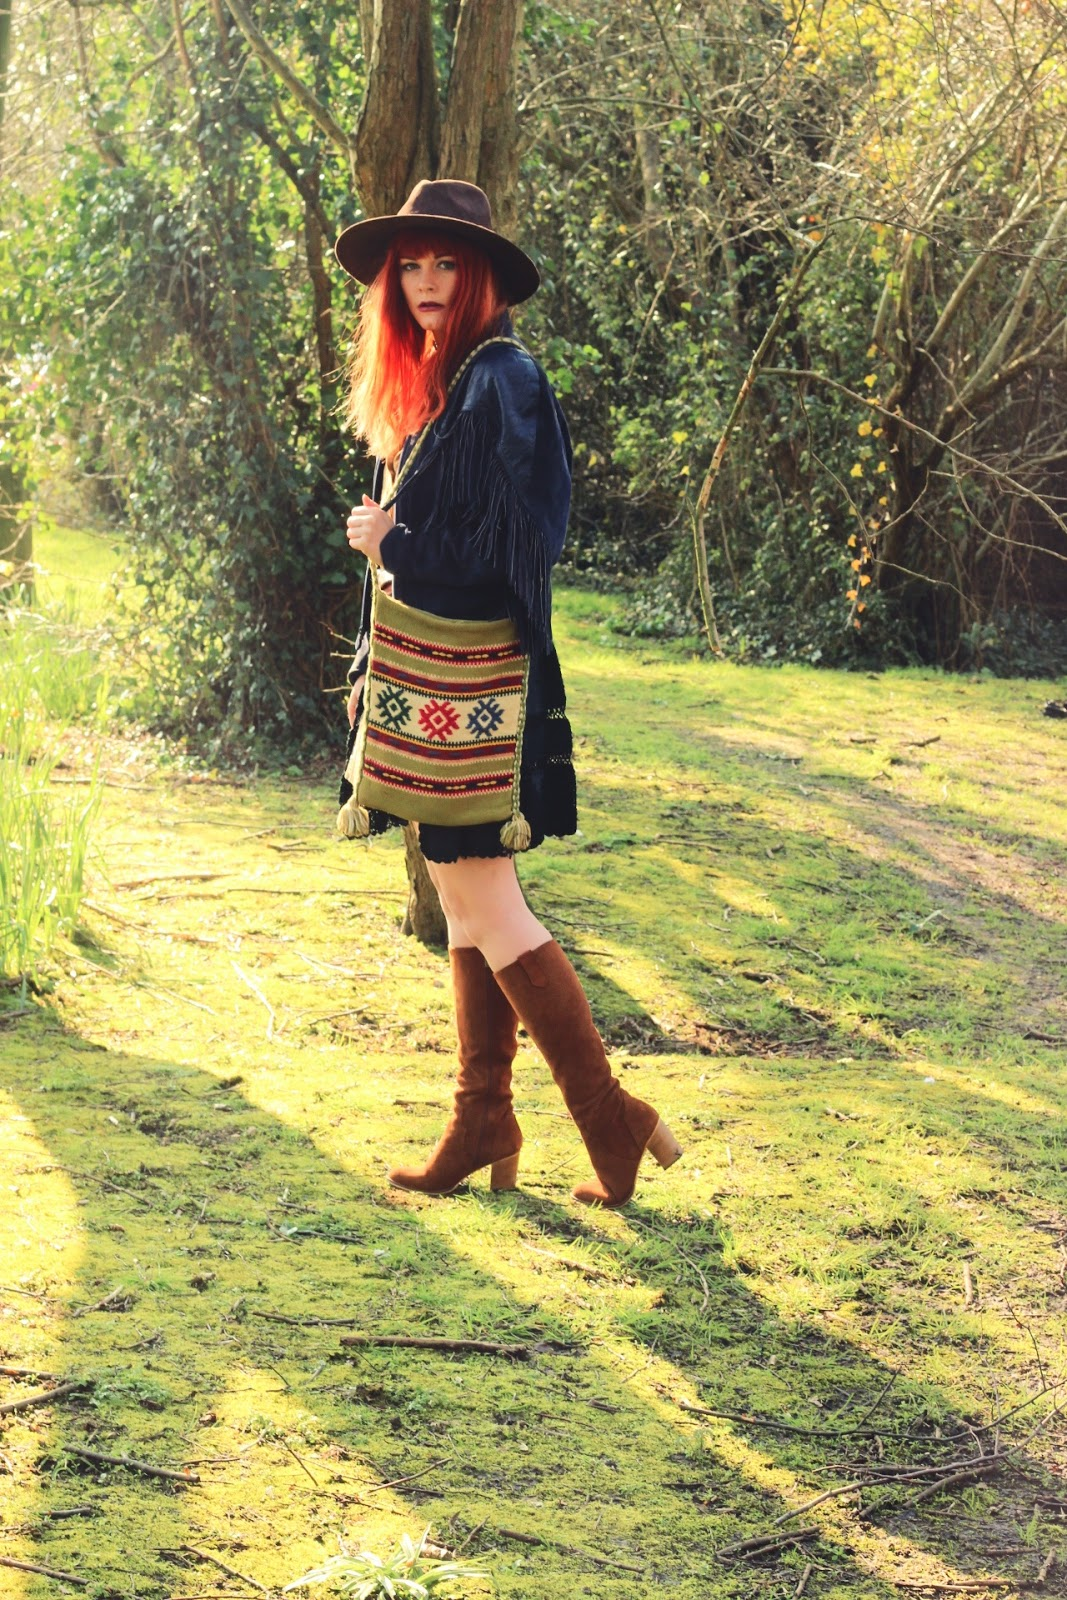 Blue Suede Vintage Fringed Jacket & 70's Inspired Outfit